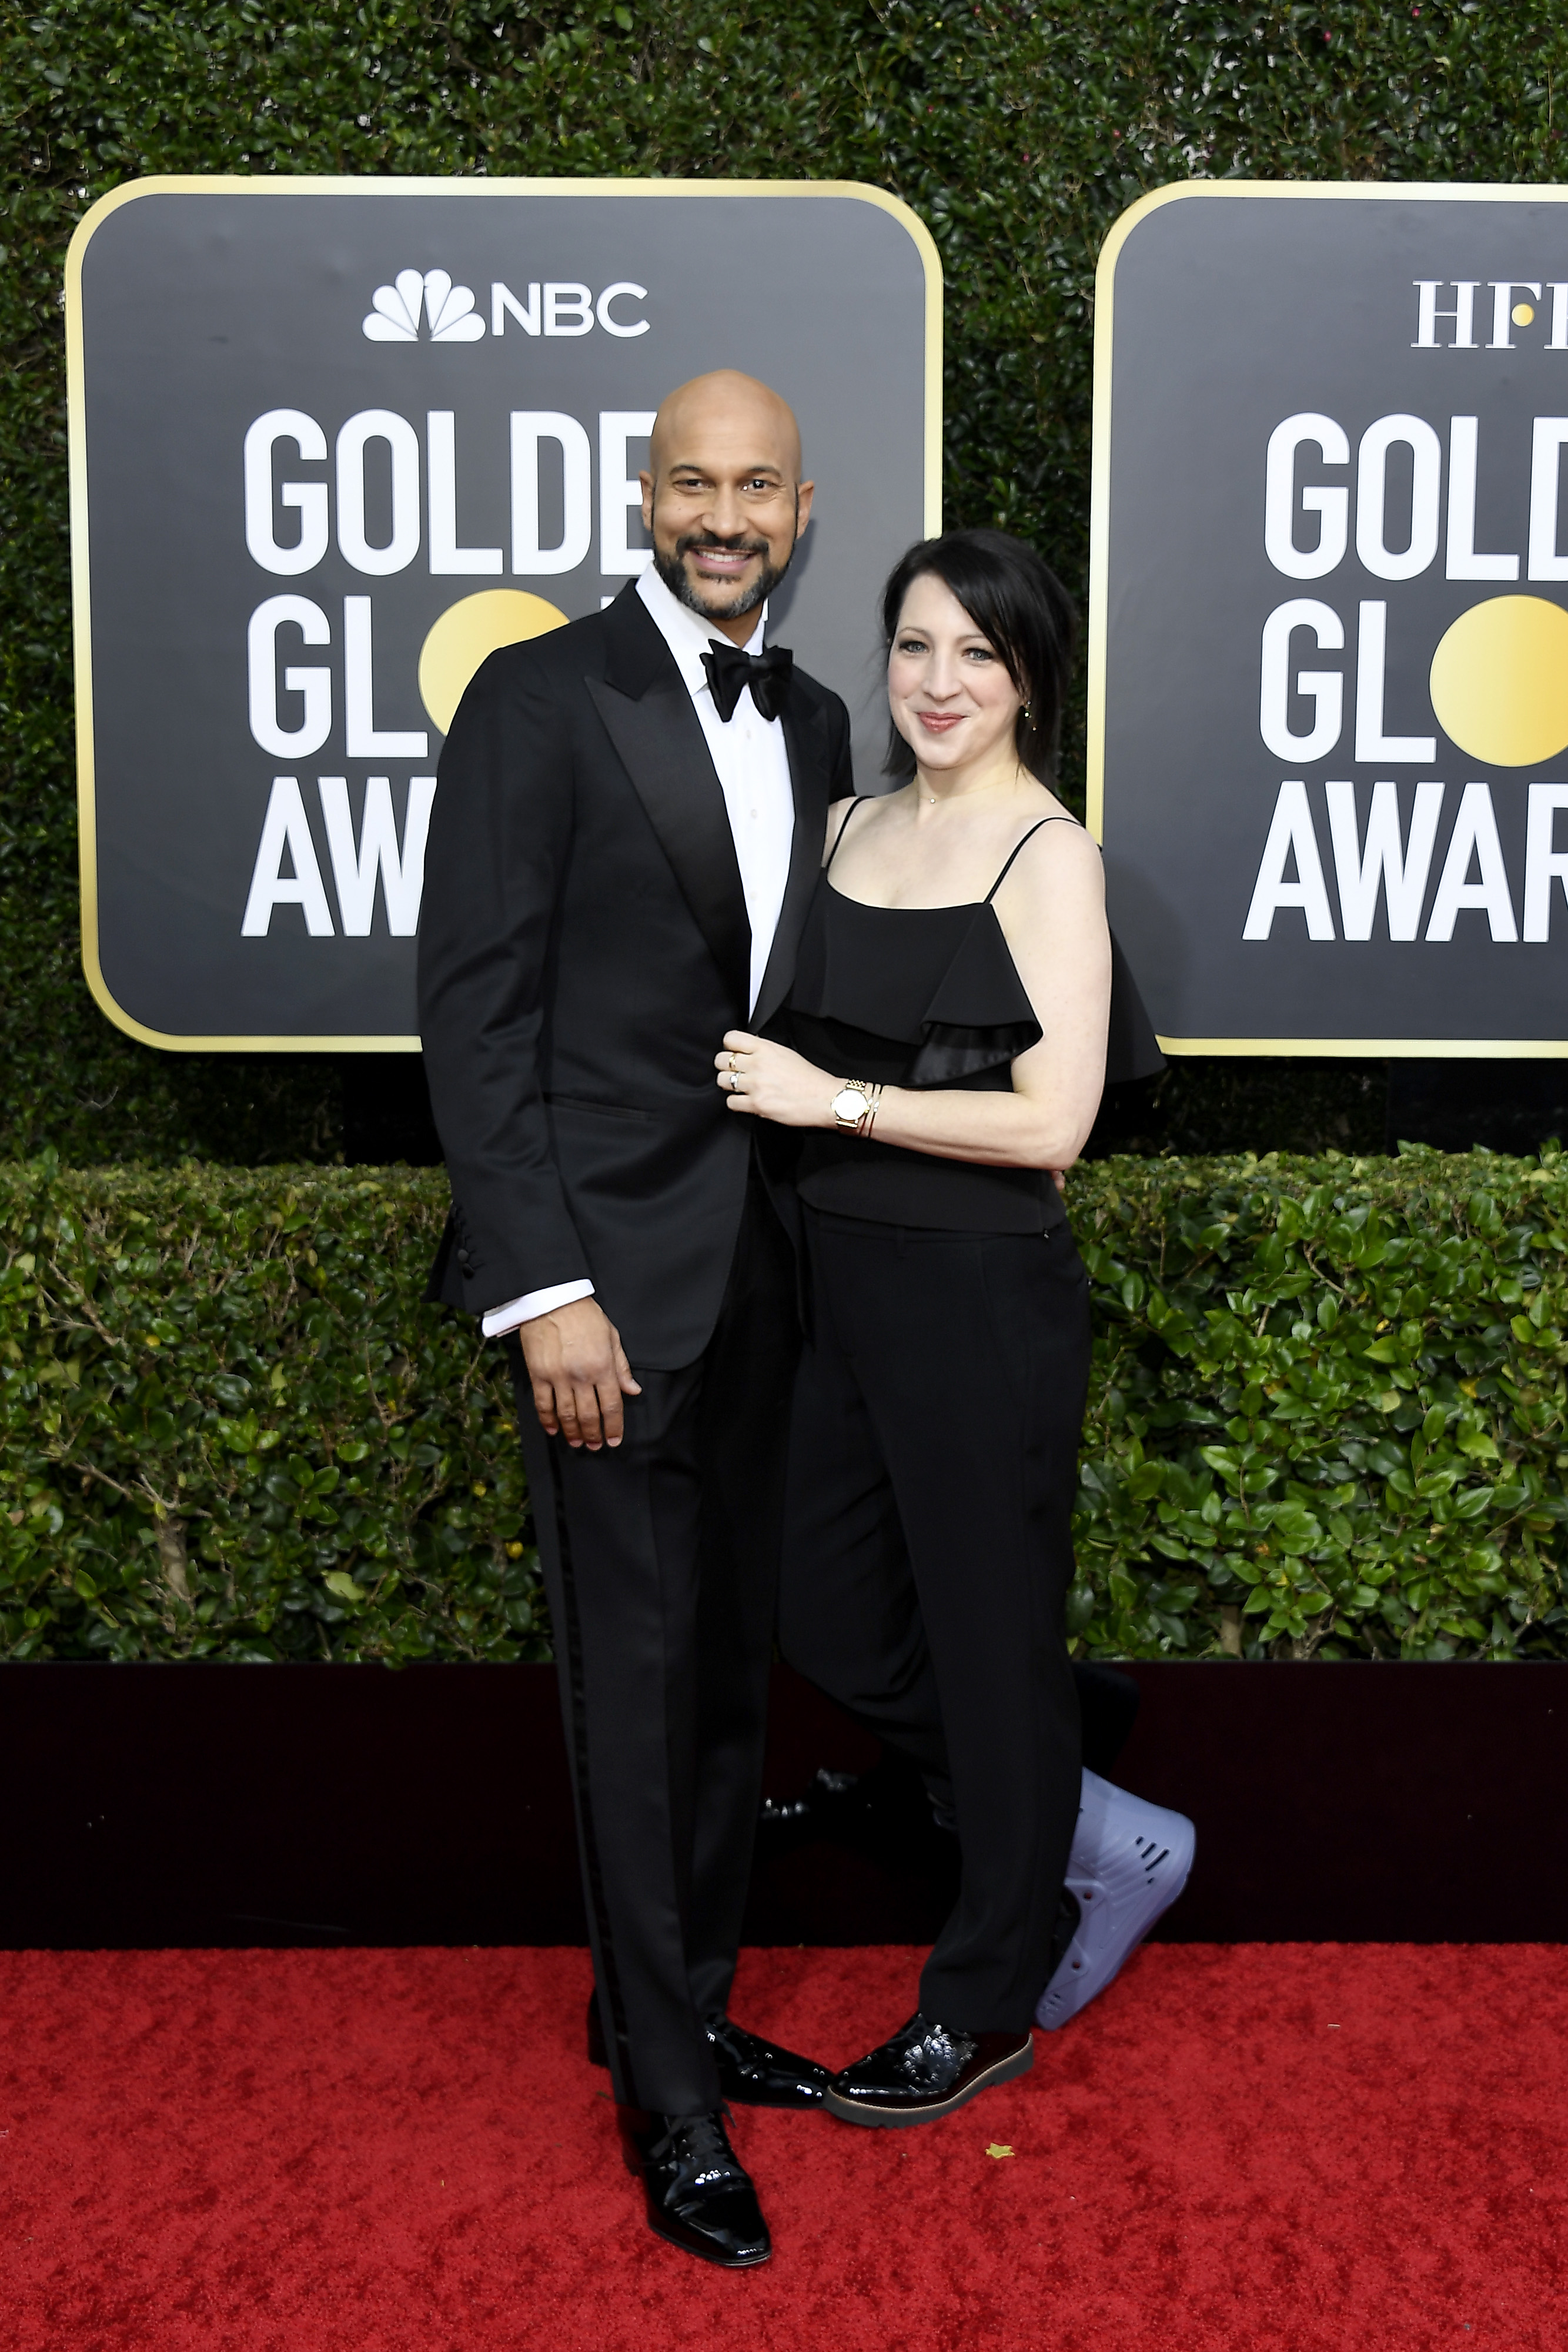 BEVERLY HILLS, CALIFORNIA - JANUARY 05: 77th ANNUAL GOLDEN GLOBE AWARDS -- Pictured: (l-r) Keegan-Michael Key and Elisa Pugliese arrive to the 77th Annual Golden Globe Awards held at the Beverly Hilton Hotel on January 5, 2020. -- (Photo by: Kevork Djansezian/NBC/NBCU Photo Bank via Getty Images)